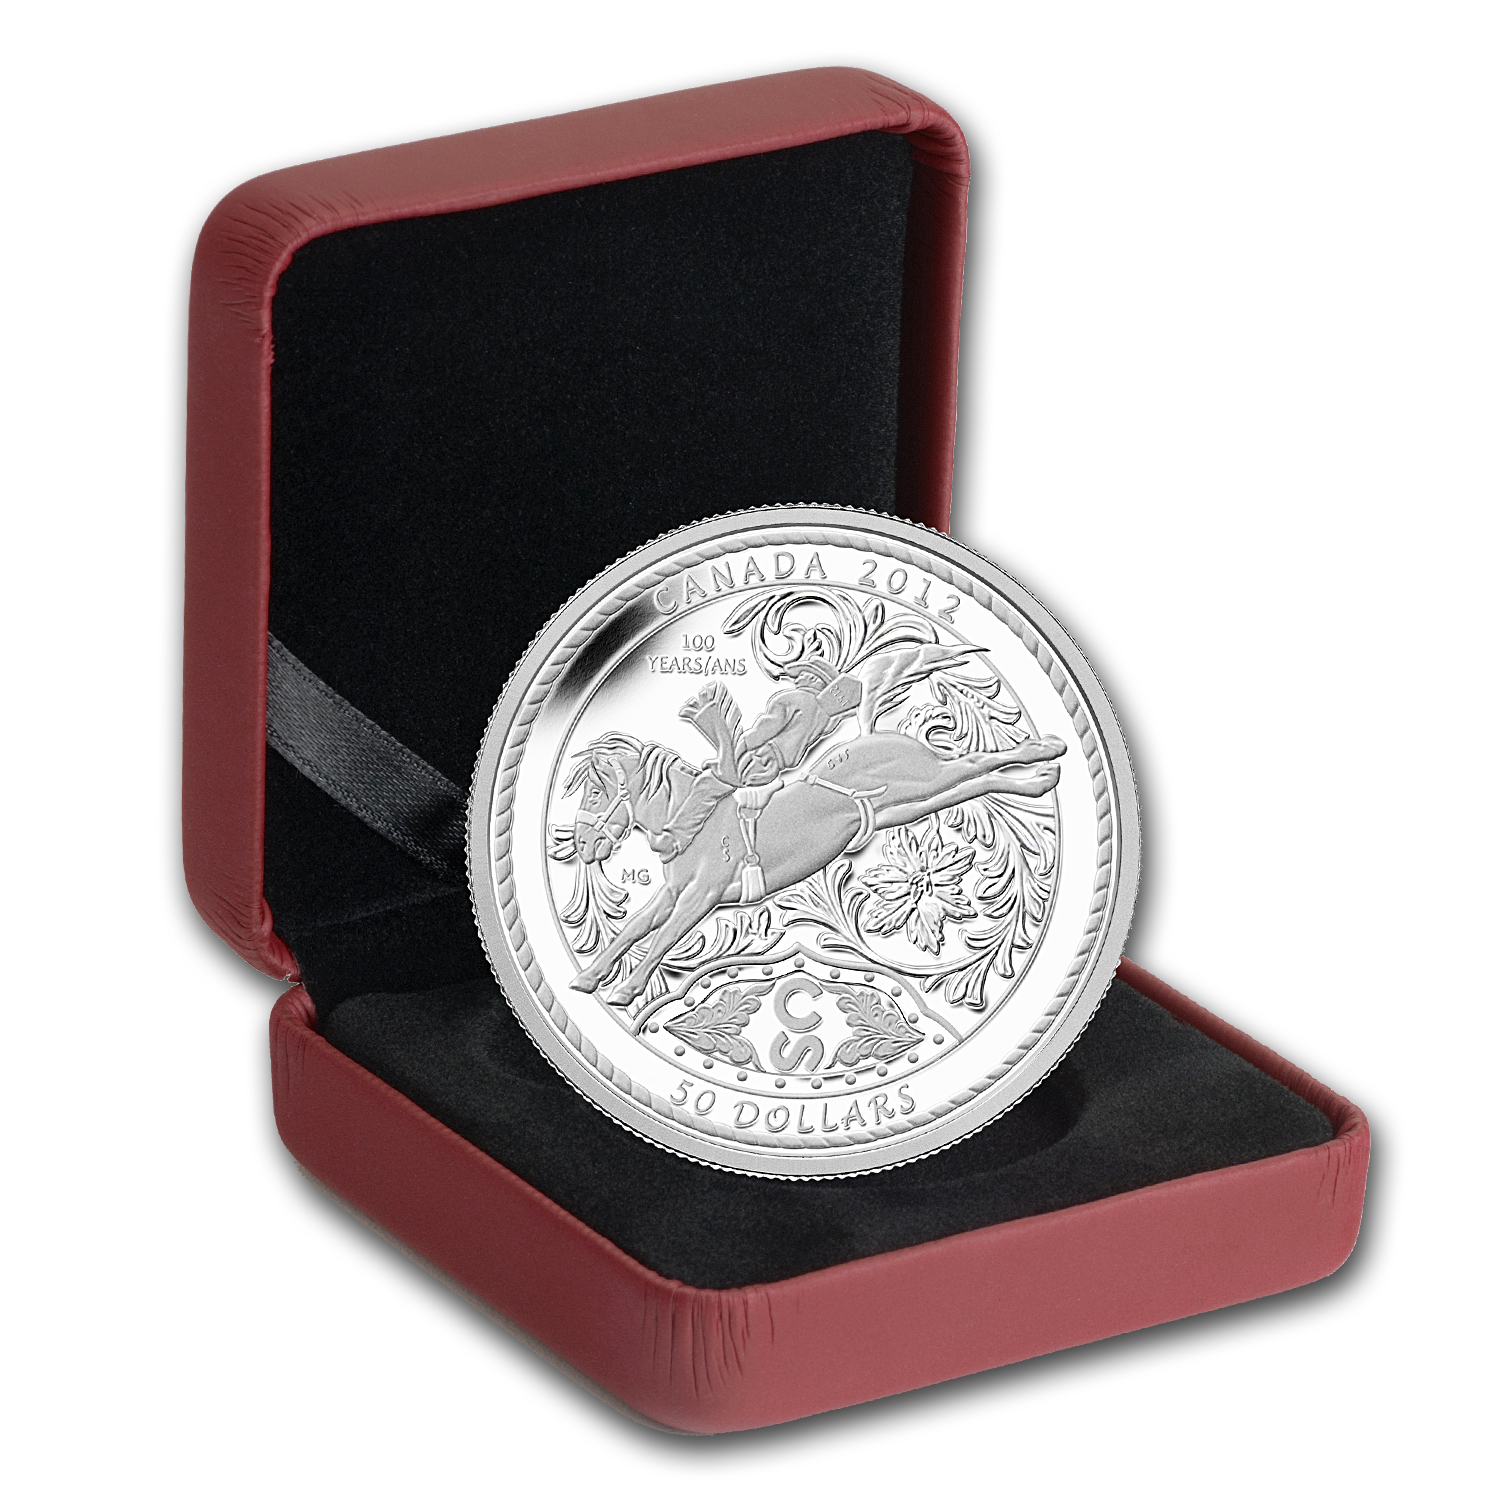 2012 5 oz Silver Canadian $50 Calgary Stampede Bucking Bronco